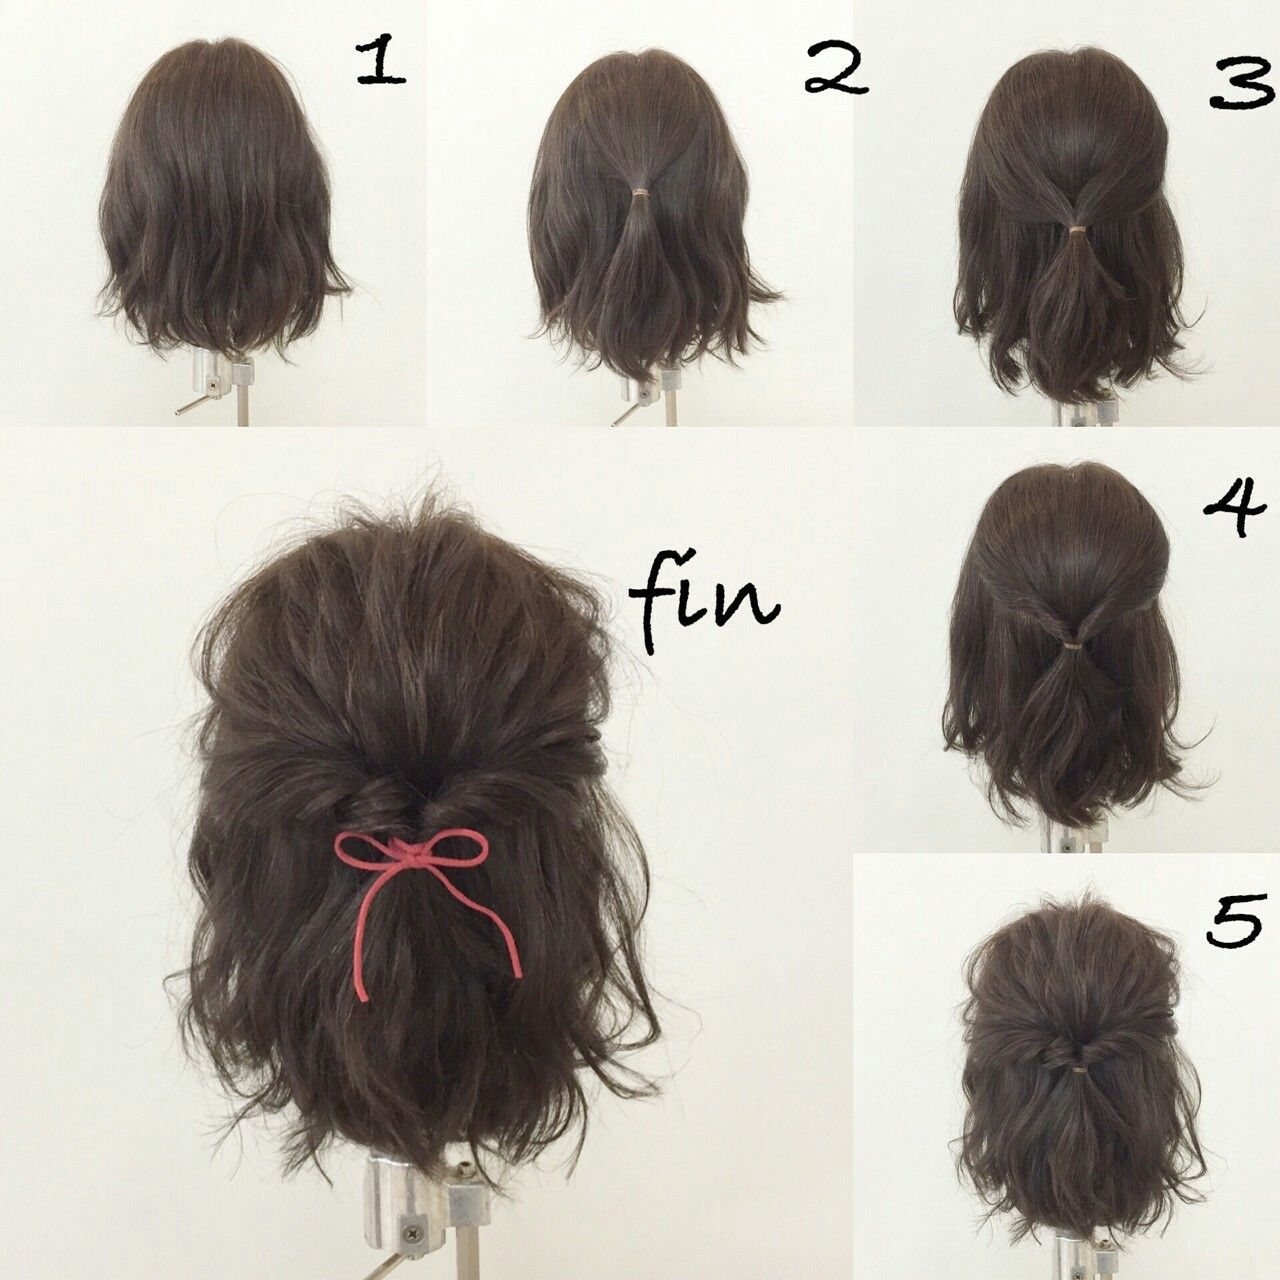 Peinados hairstyles in pinterest shorts hair style and